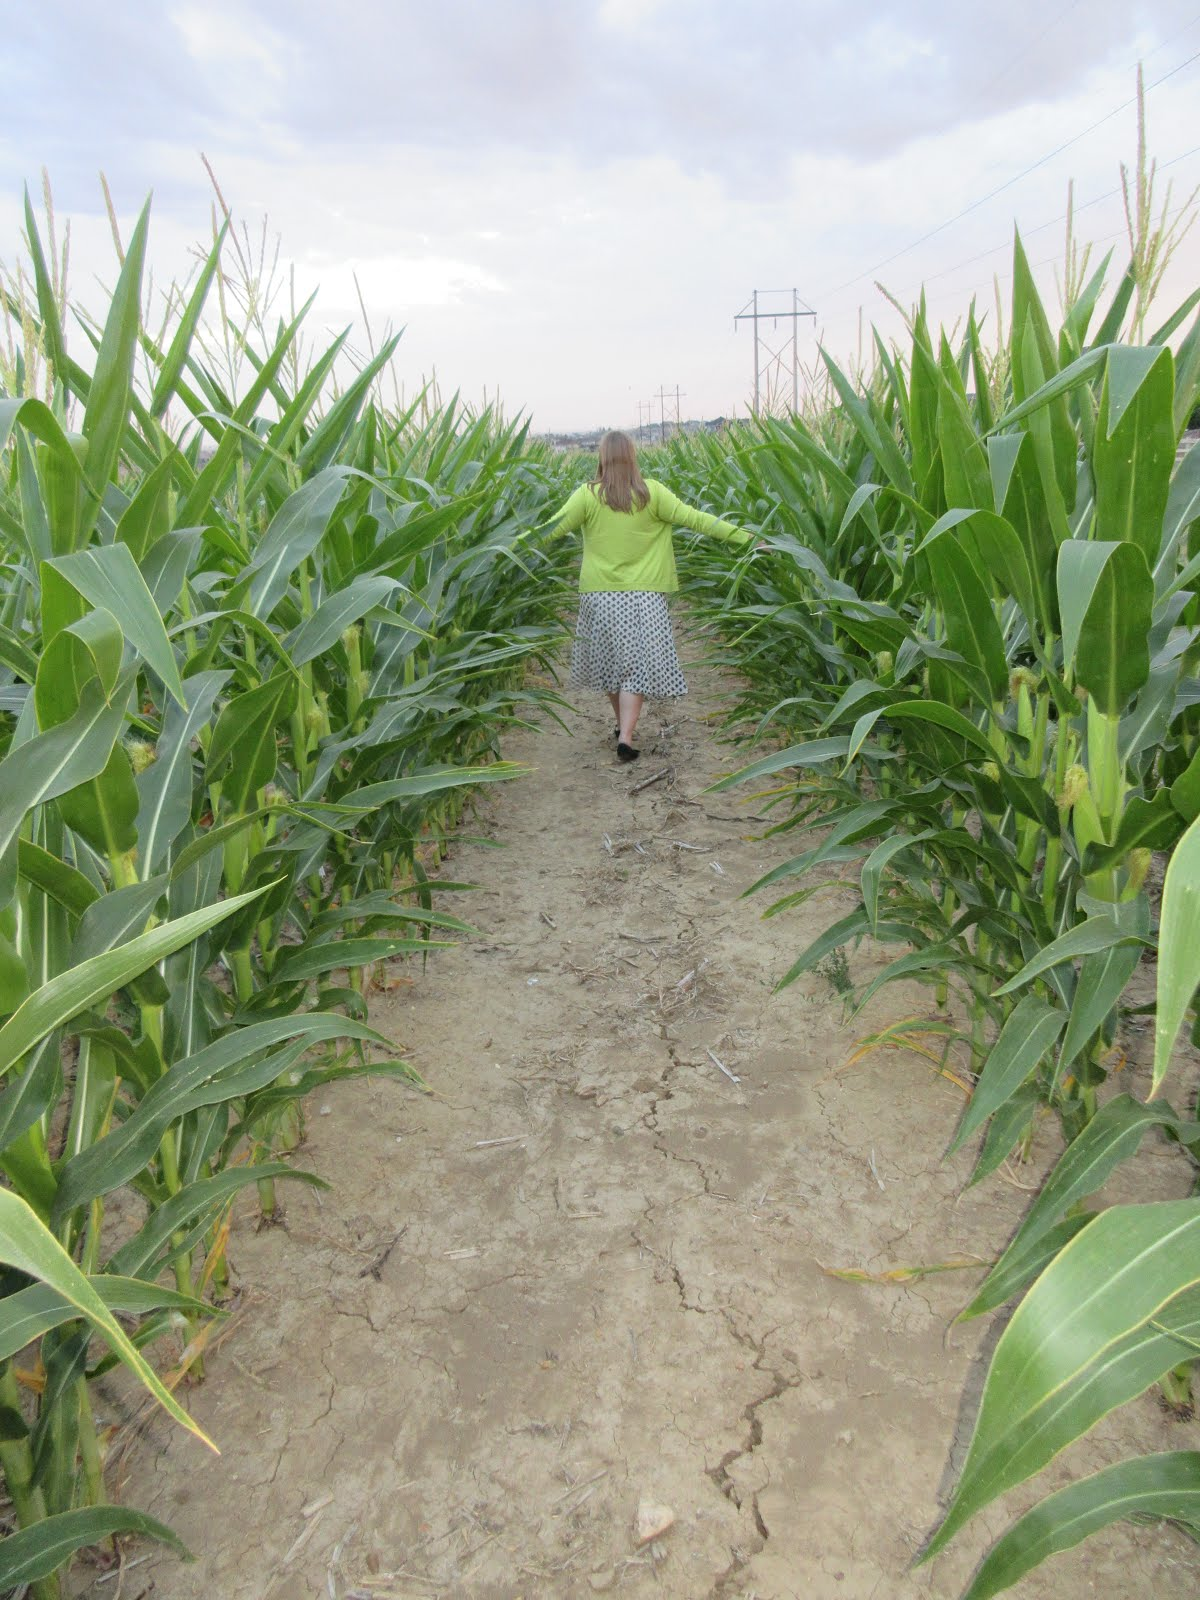 Sister Richards playing Smallville in a Cornfield